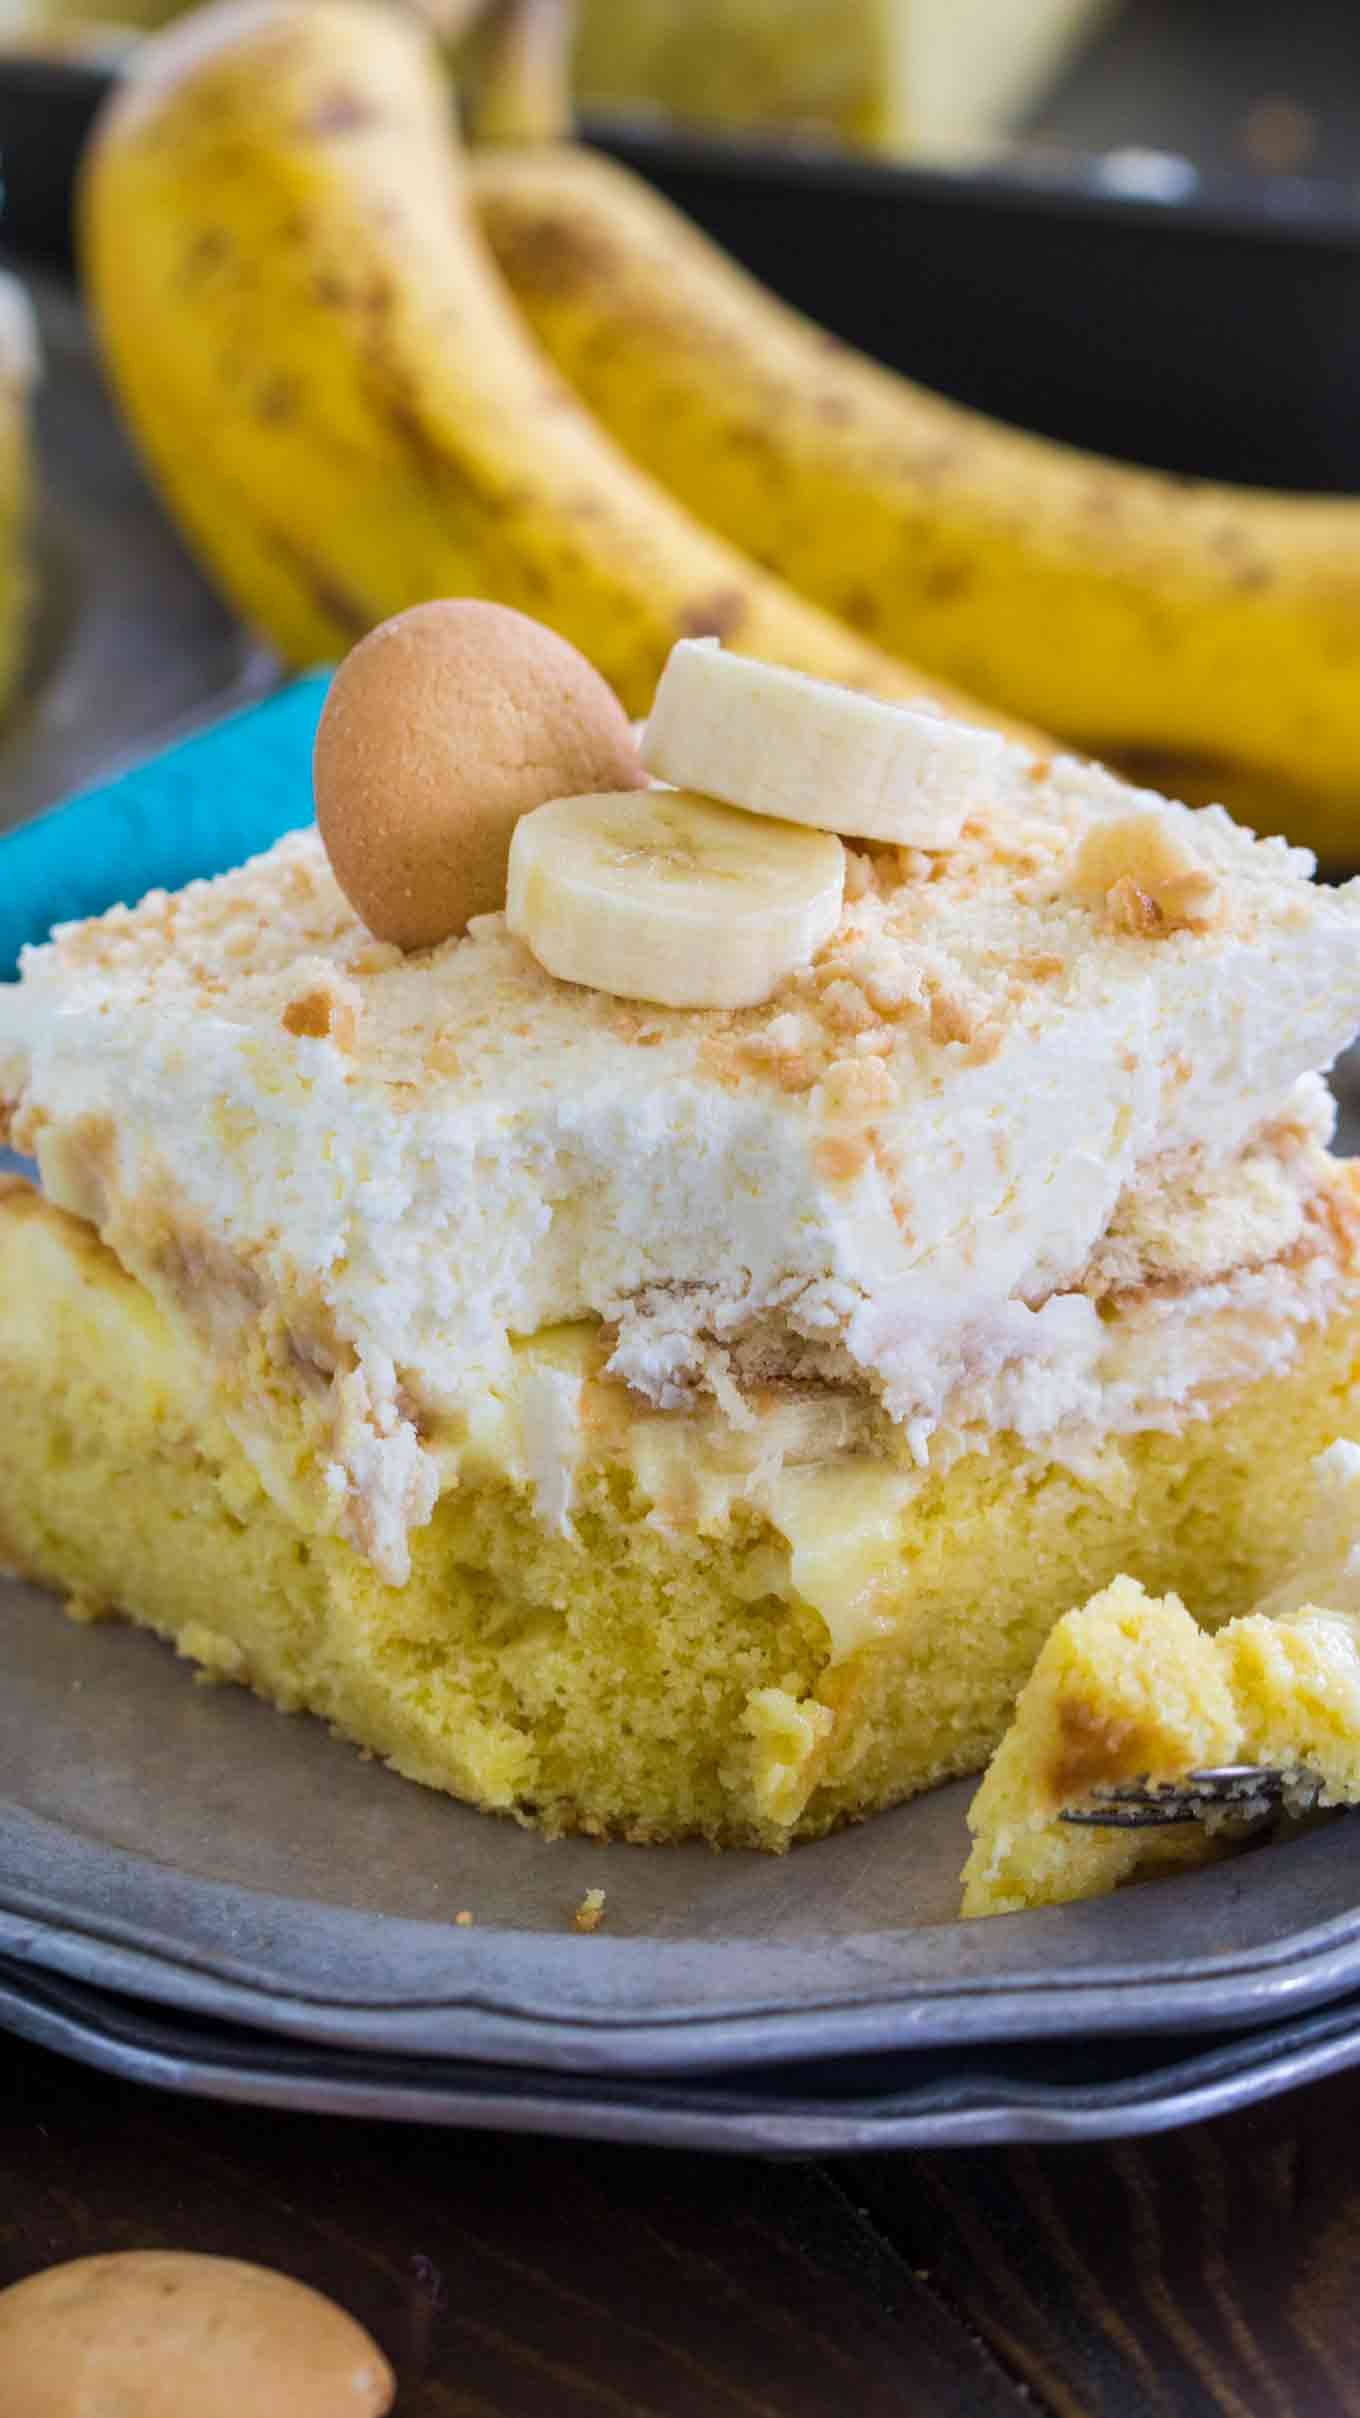 Banana Pudding Poke Cake with Whipped Cream Frosting